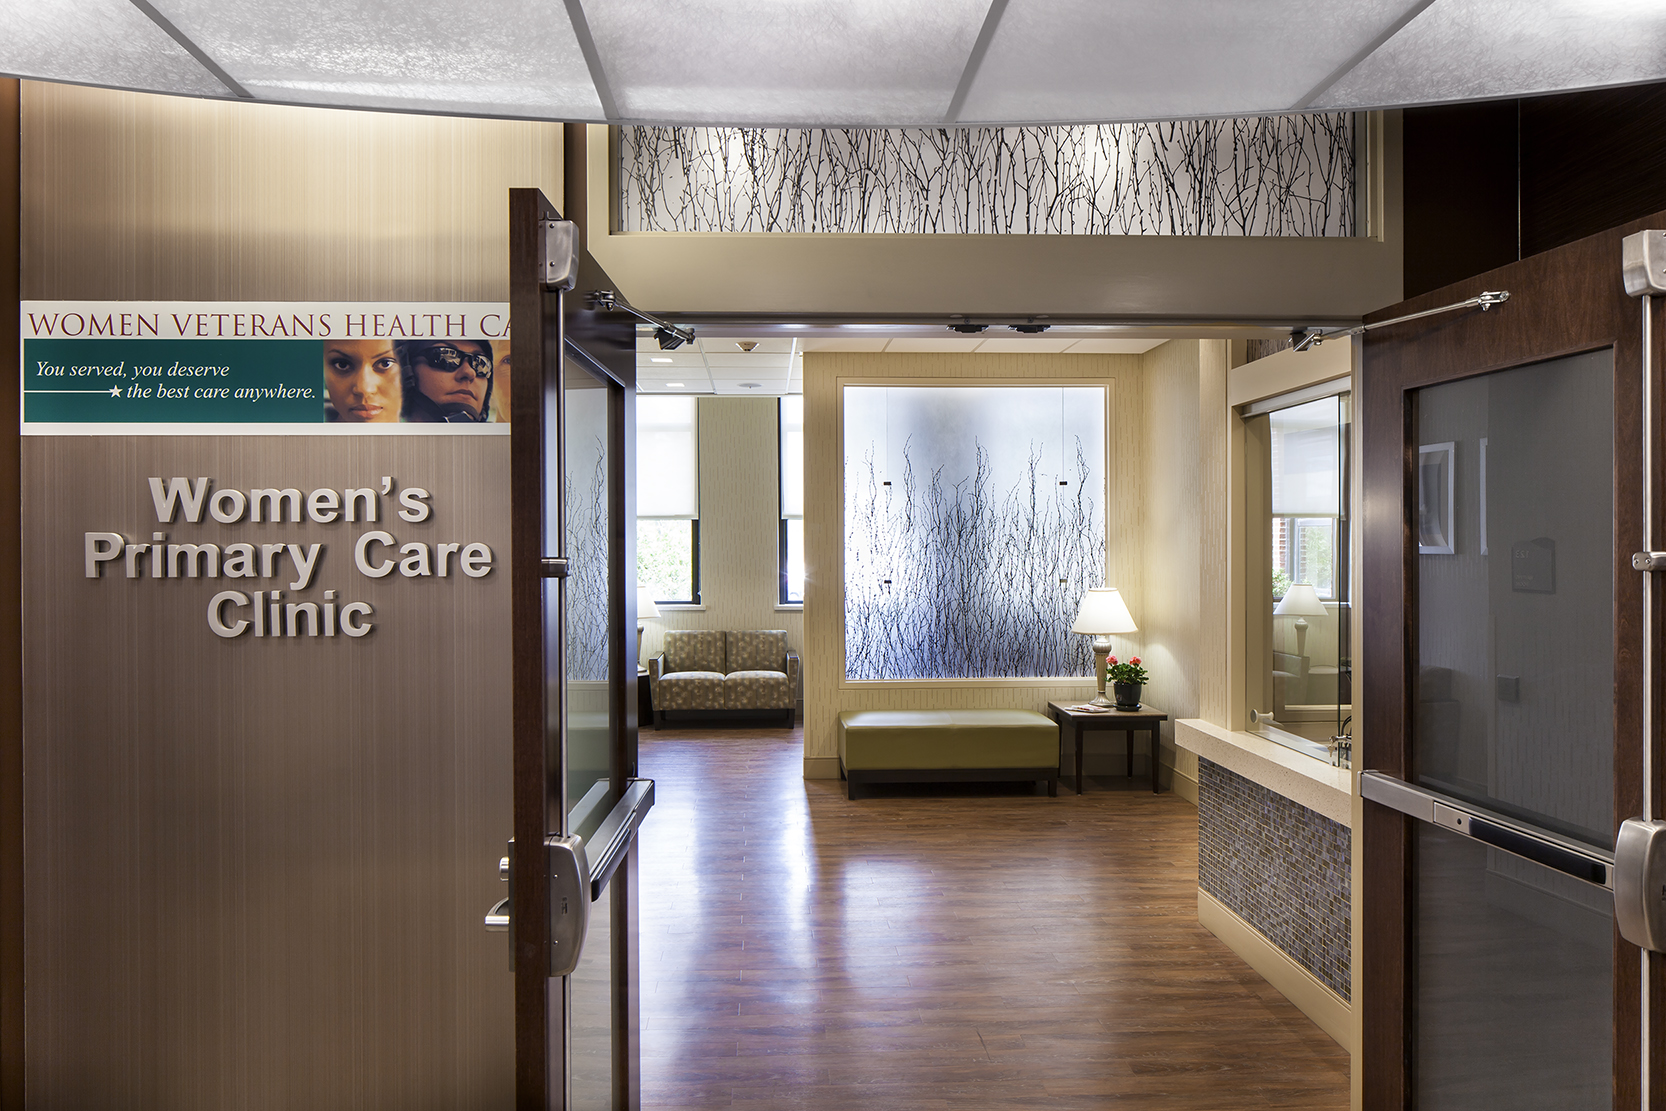 Women's Primary Care Clinic